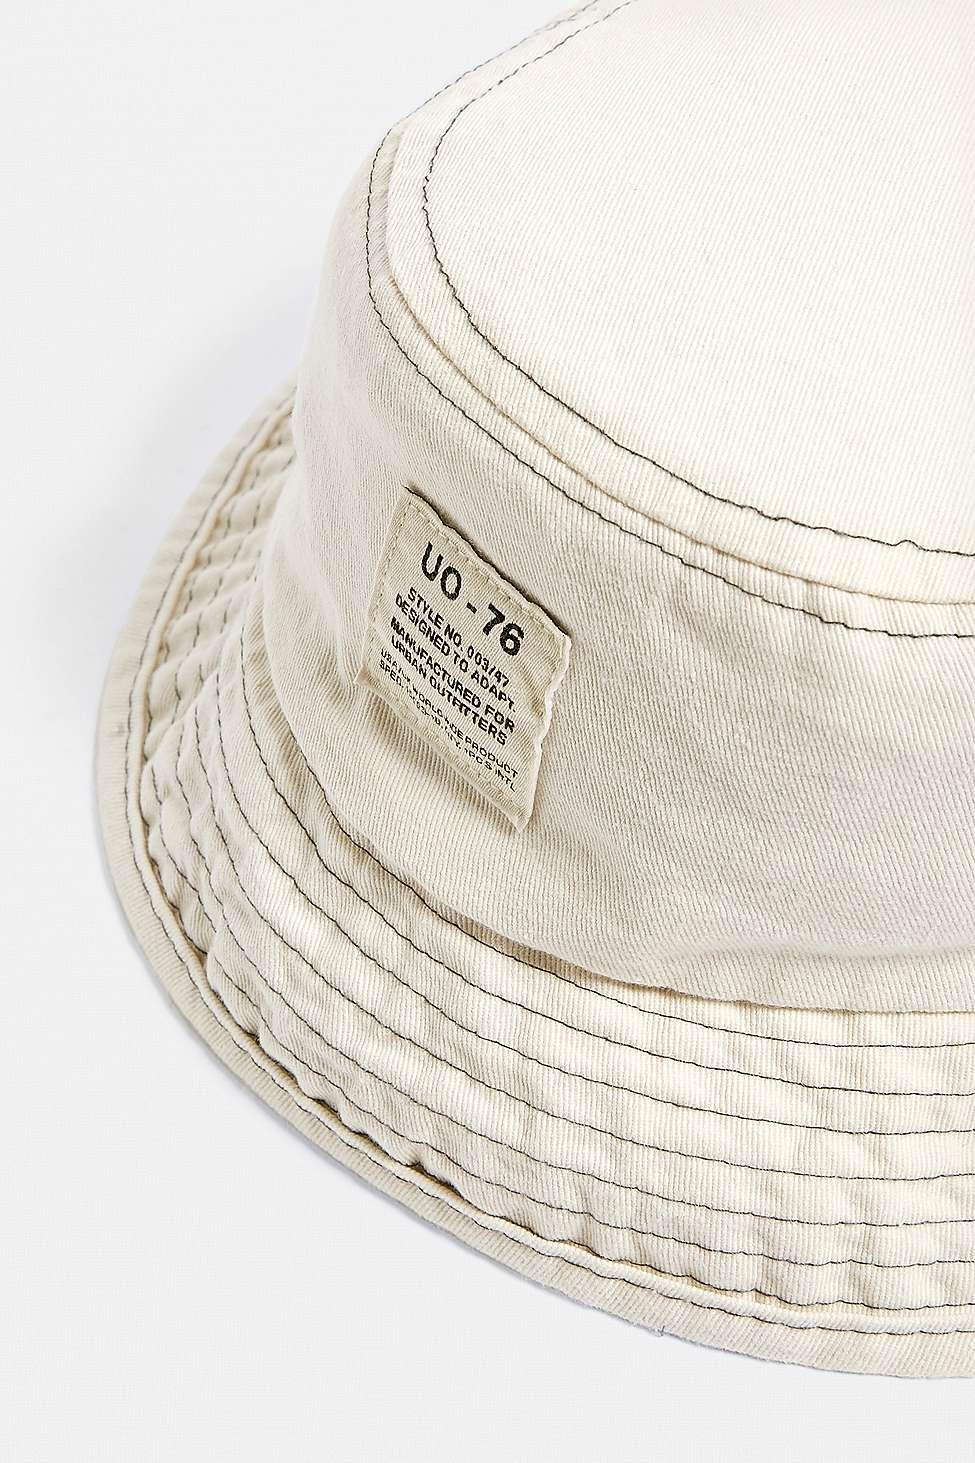 aad0d18269afd Urban Outfitters Uo Utility Bucket Hat in Natural - Lyst